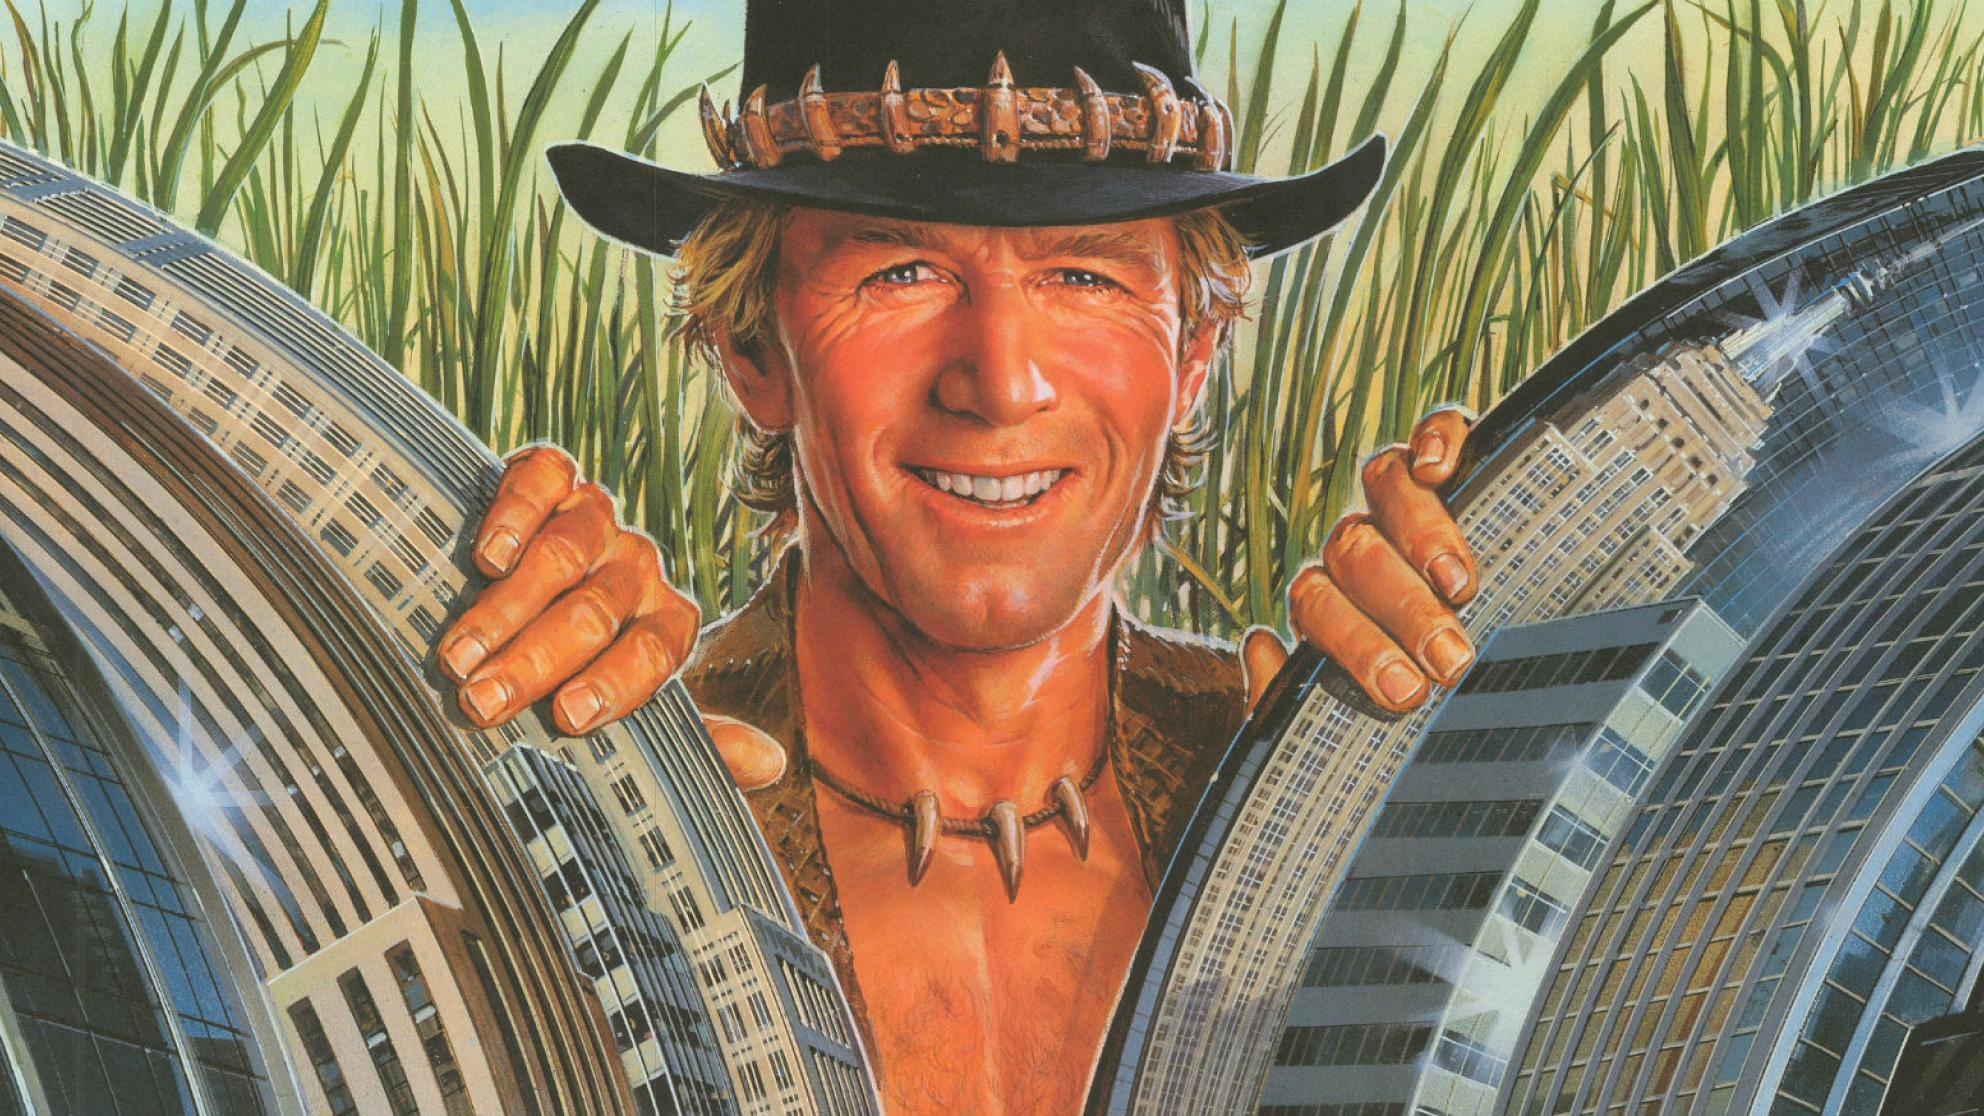 Cropped section of poster from Crocodile Dundee showing Paul Hogan smiling